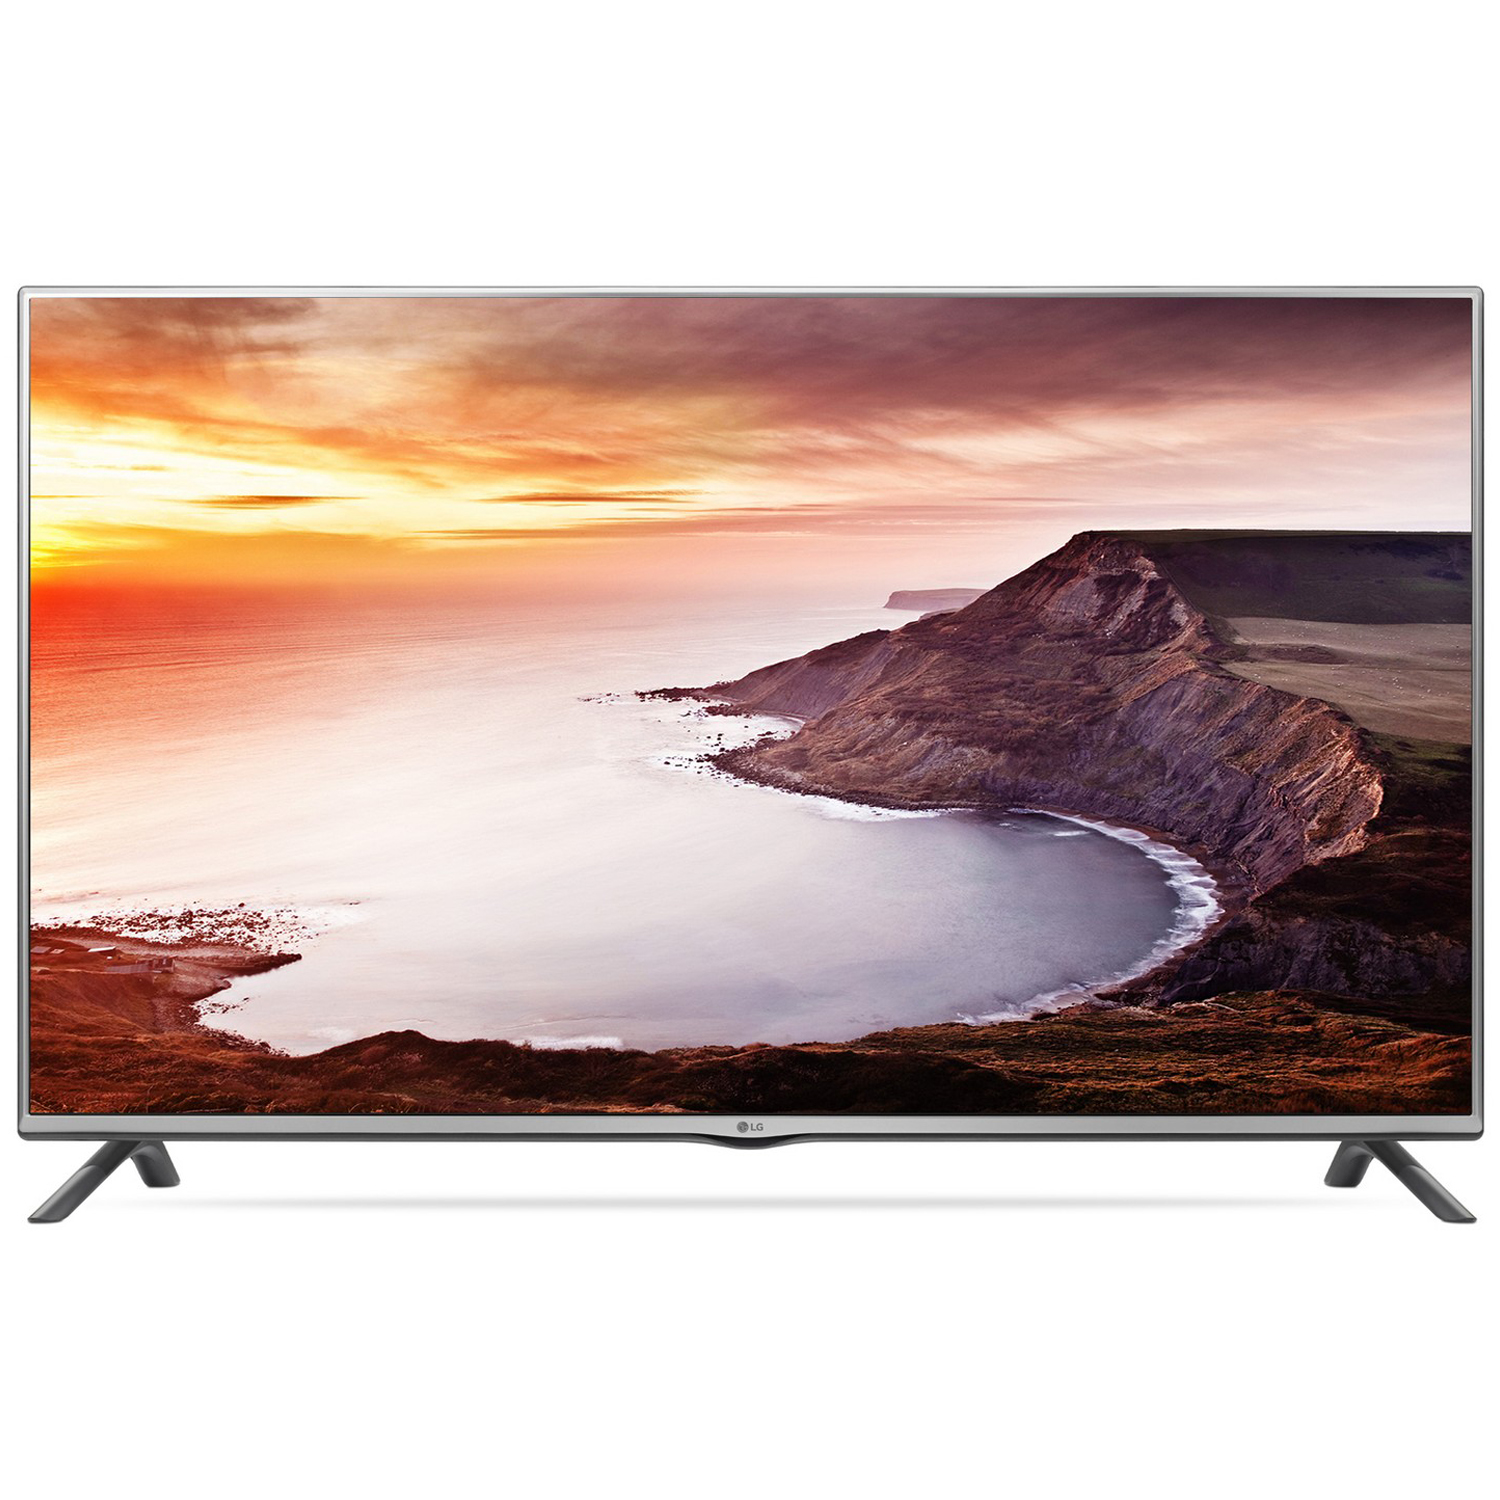 Lg 32 Inch Led Tv 32LF55 large 1